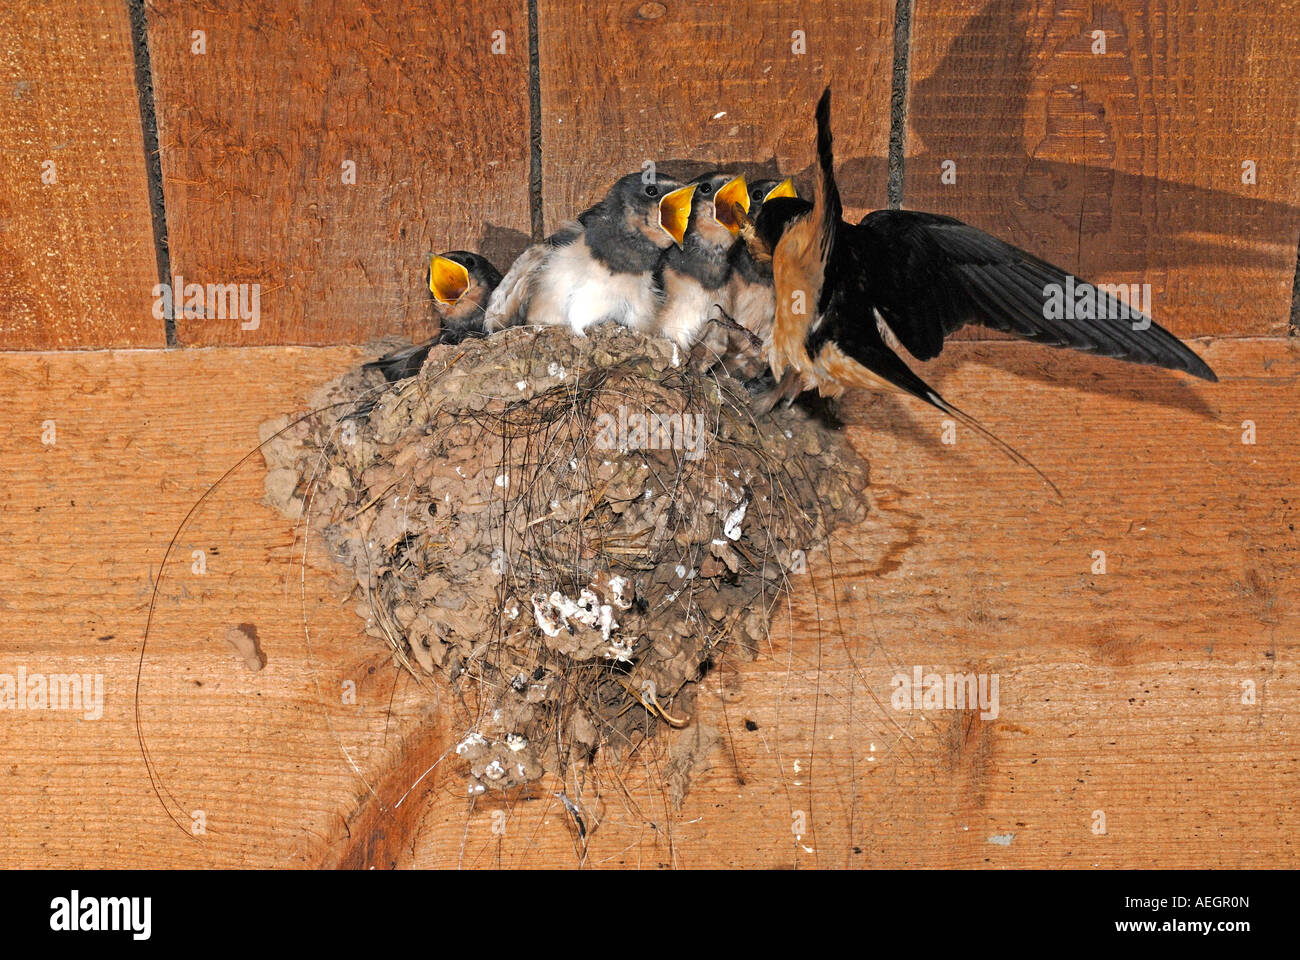 Barn Swallow (Hirundo rustica), adult feeding begging chicks at nest - Stock Image